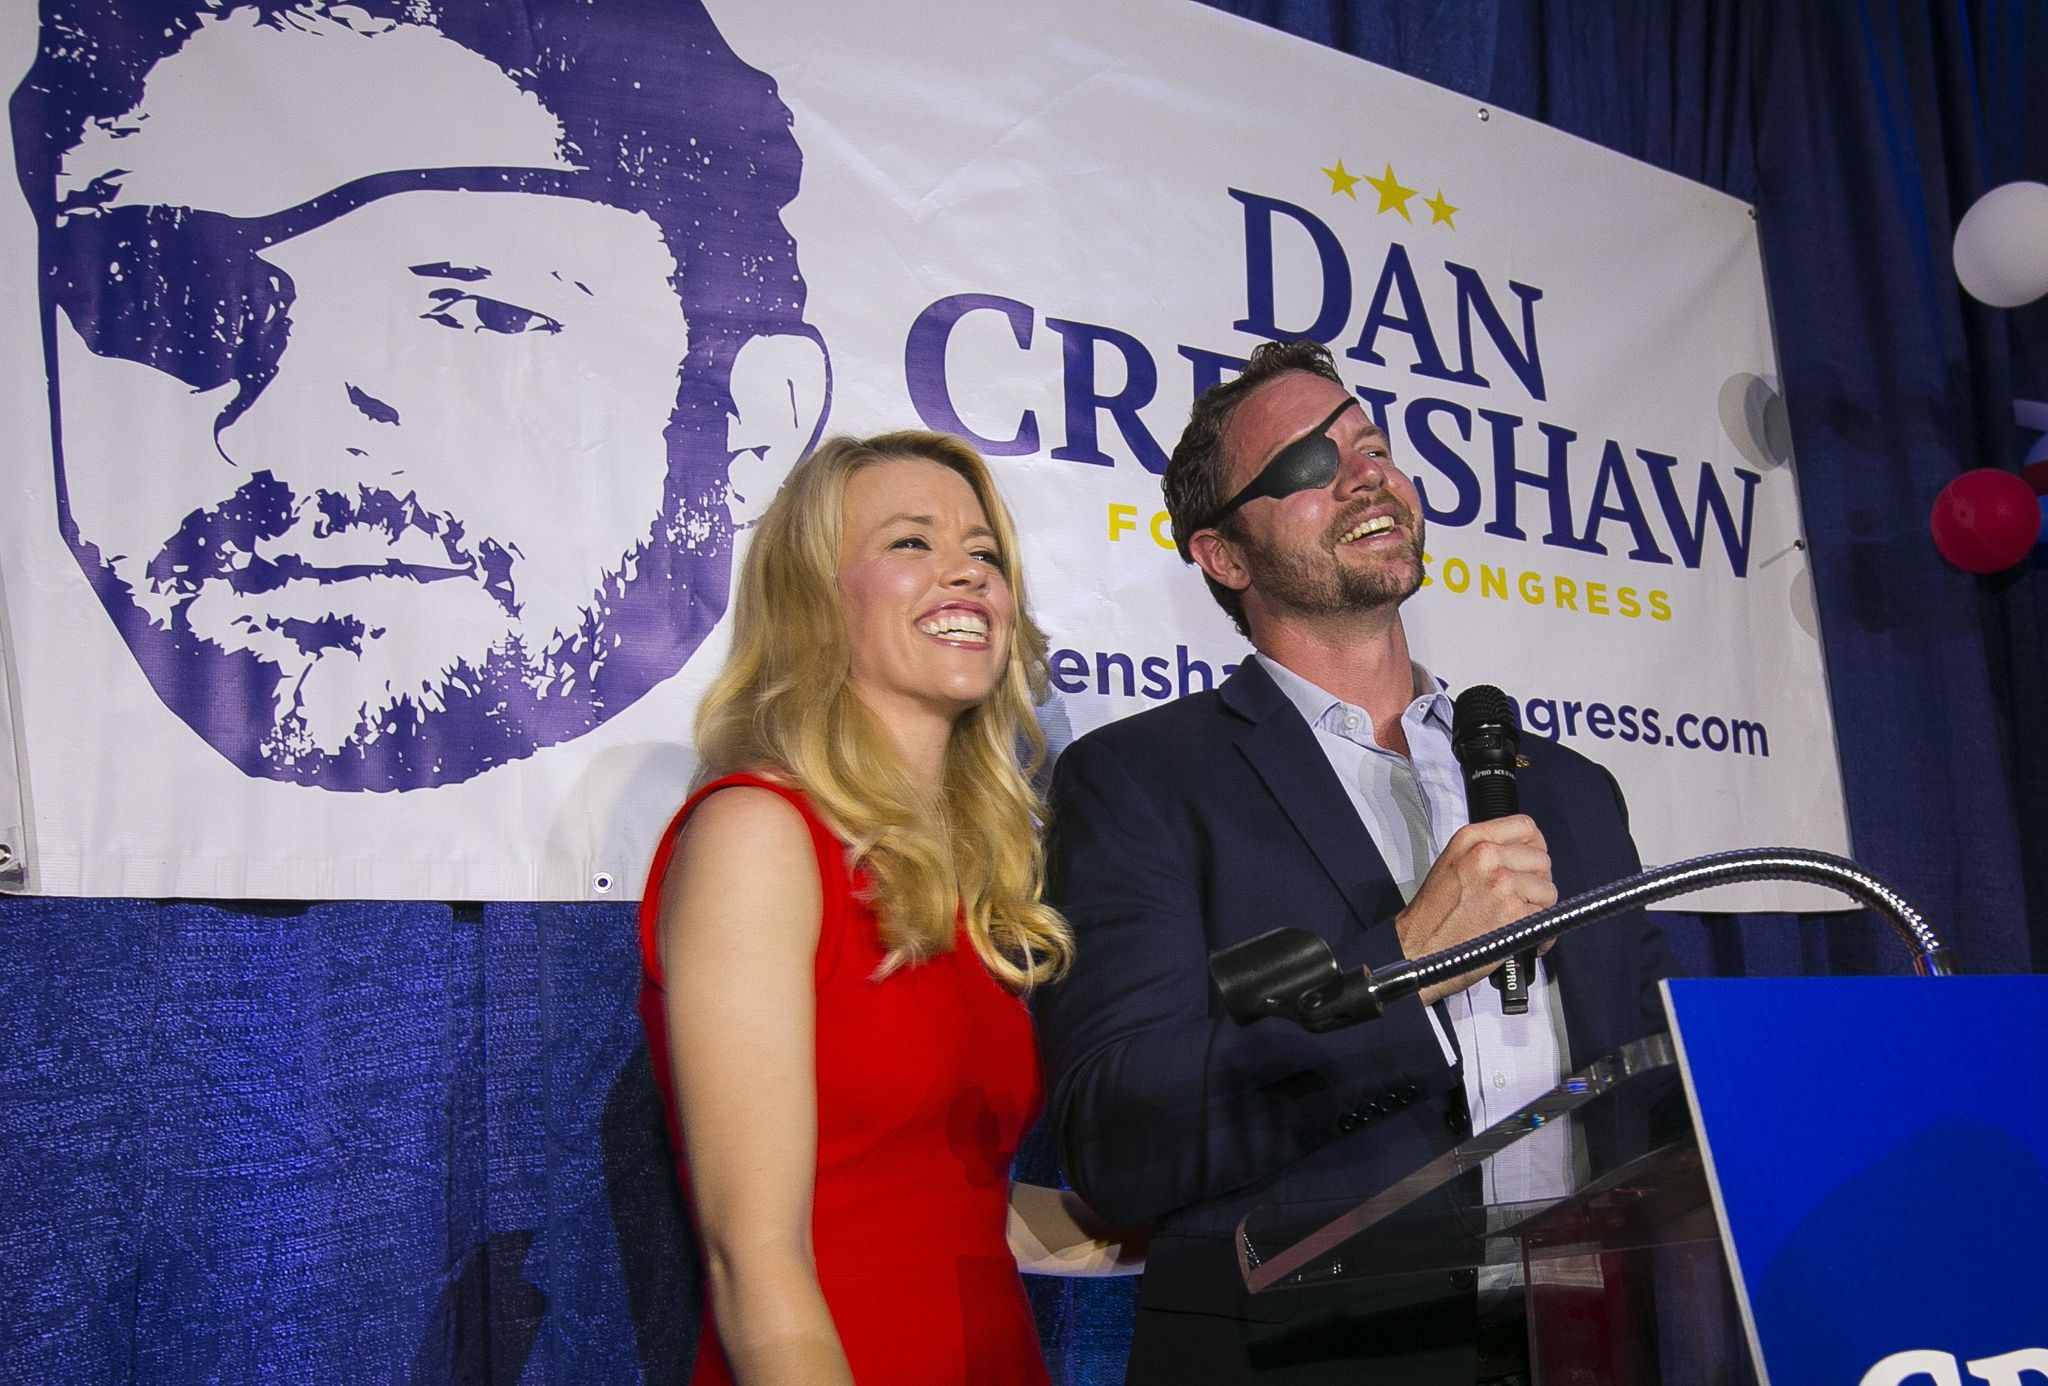 Dan Crenshaw, target of 'SNL' joke, wins Texas House seat